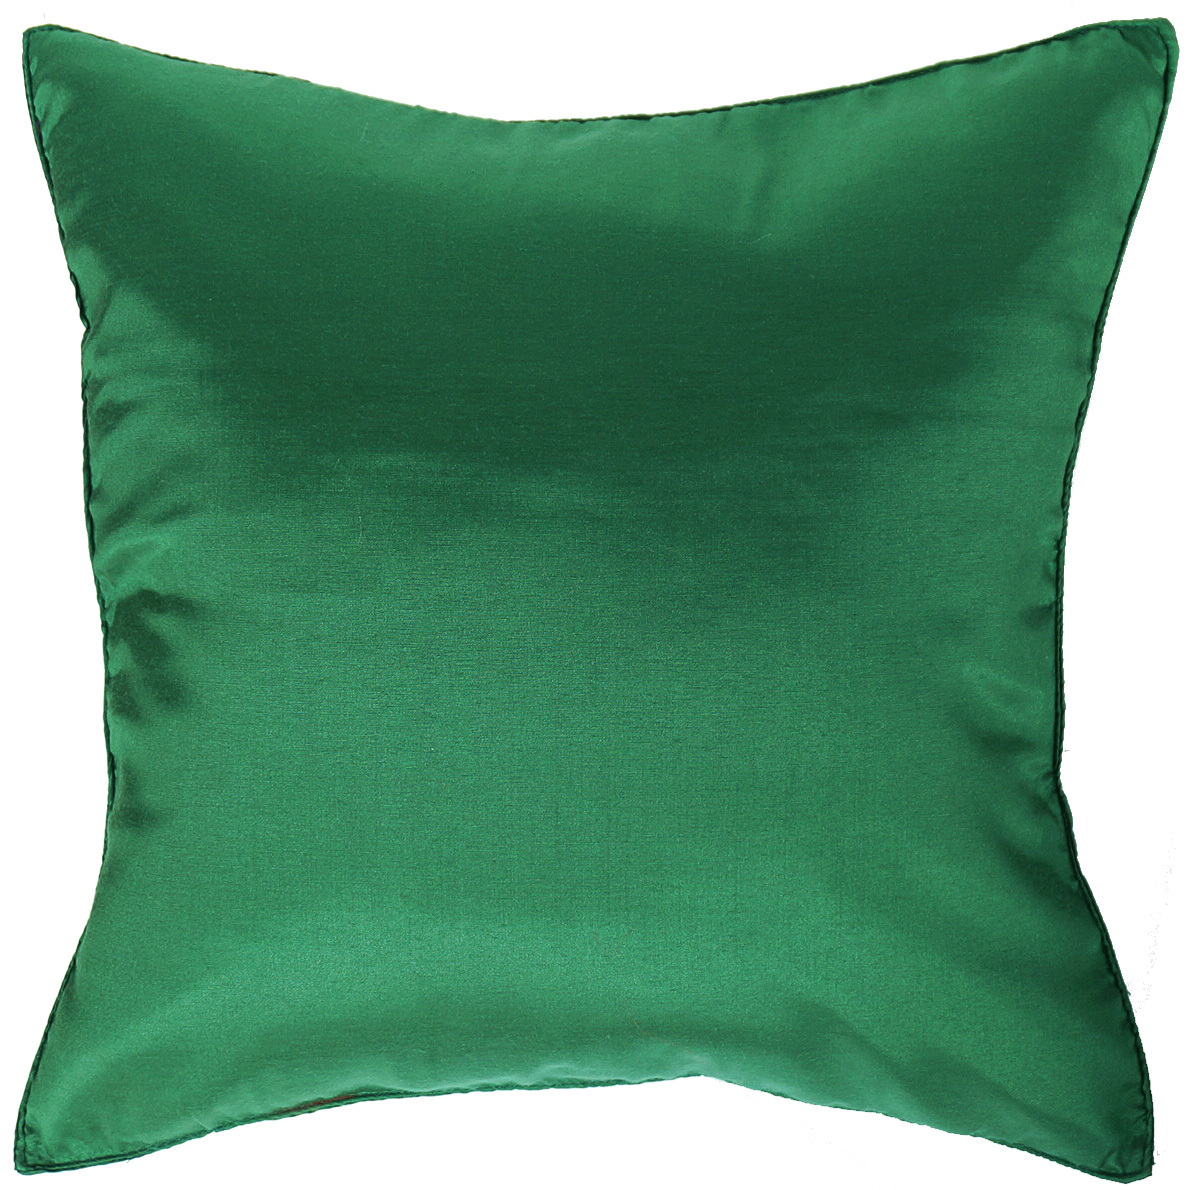 Large Throw Pillows For Couch : 1x SILK LARGE DECORATIVE THROW PILLOW COVER FOR COUCH SOFA BED SOLID COLOR 20x20 - Pillows